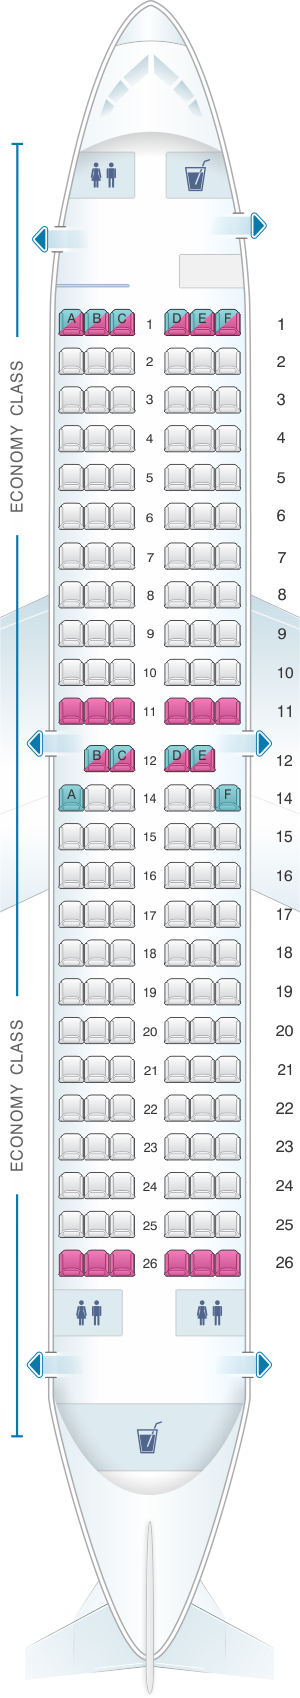 Seat map for TUIfly Boeing B737 700